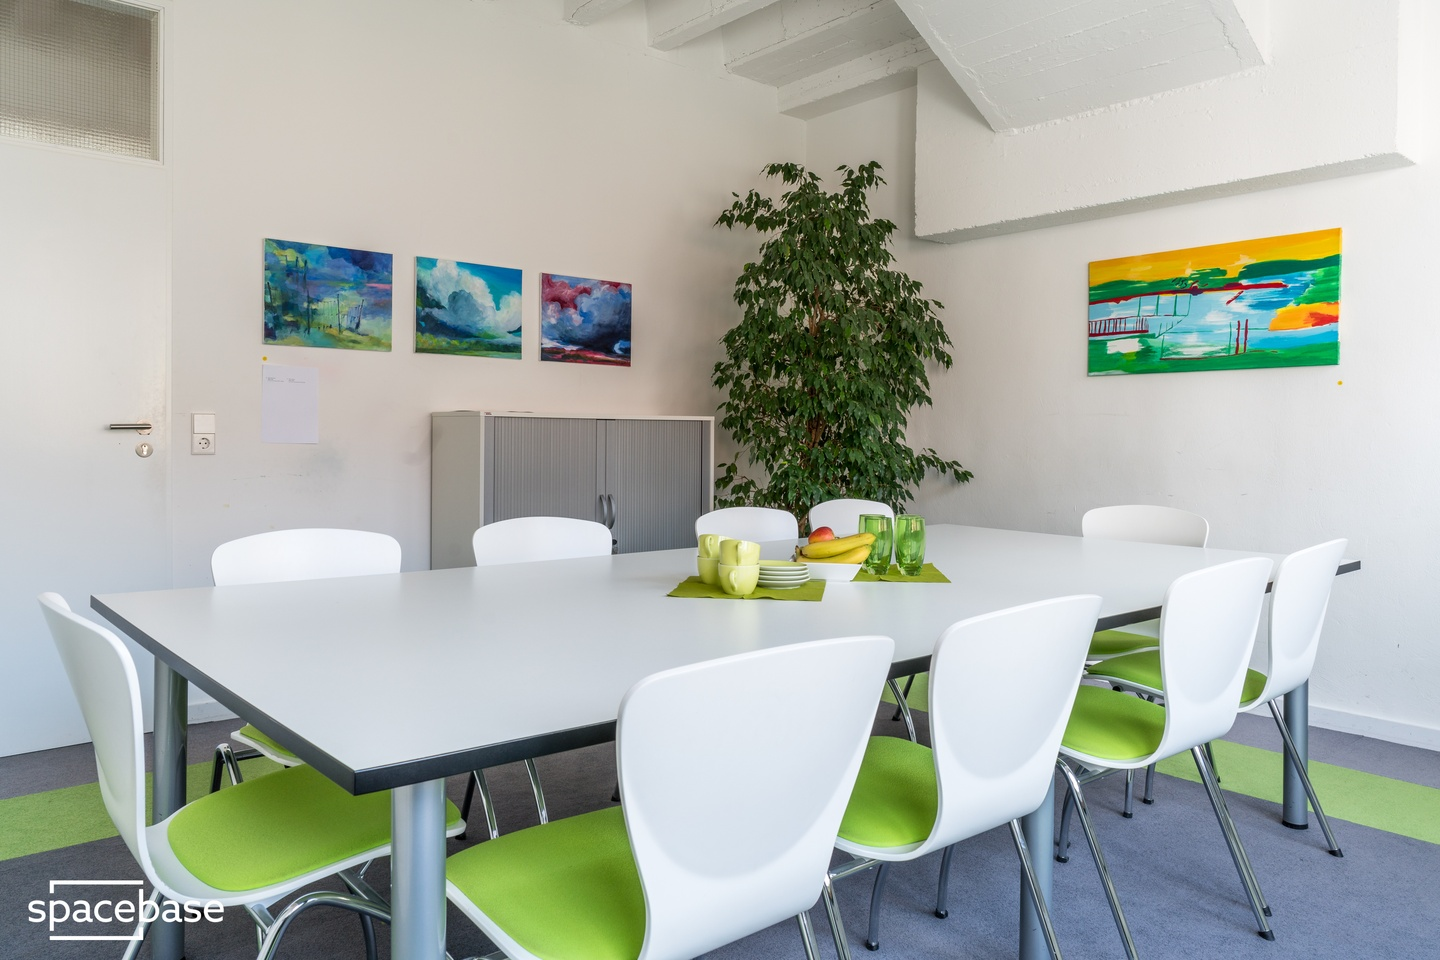 Stuttgart conference rooms Meetingraum Coworking 0711 - Green Space image 3